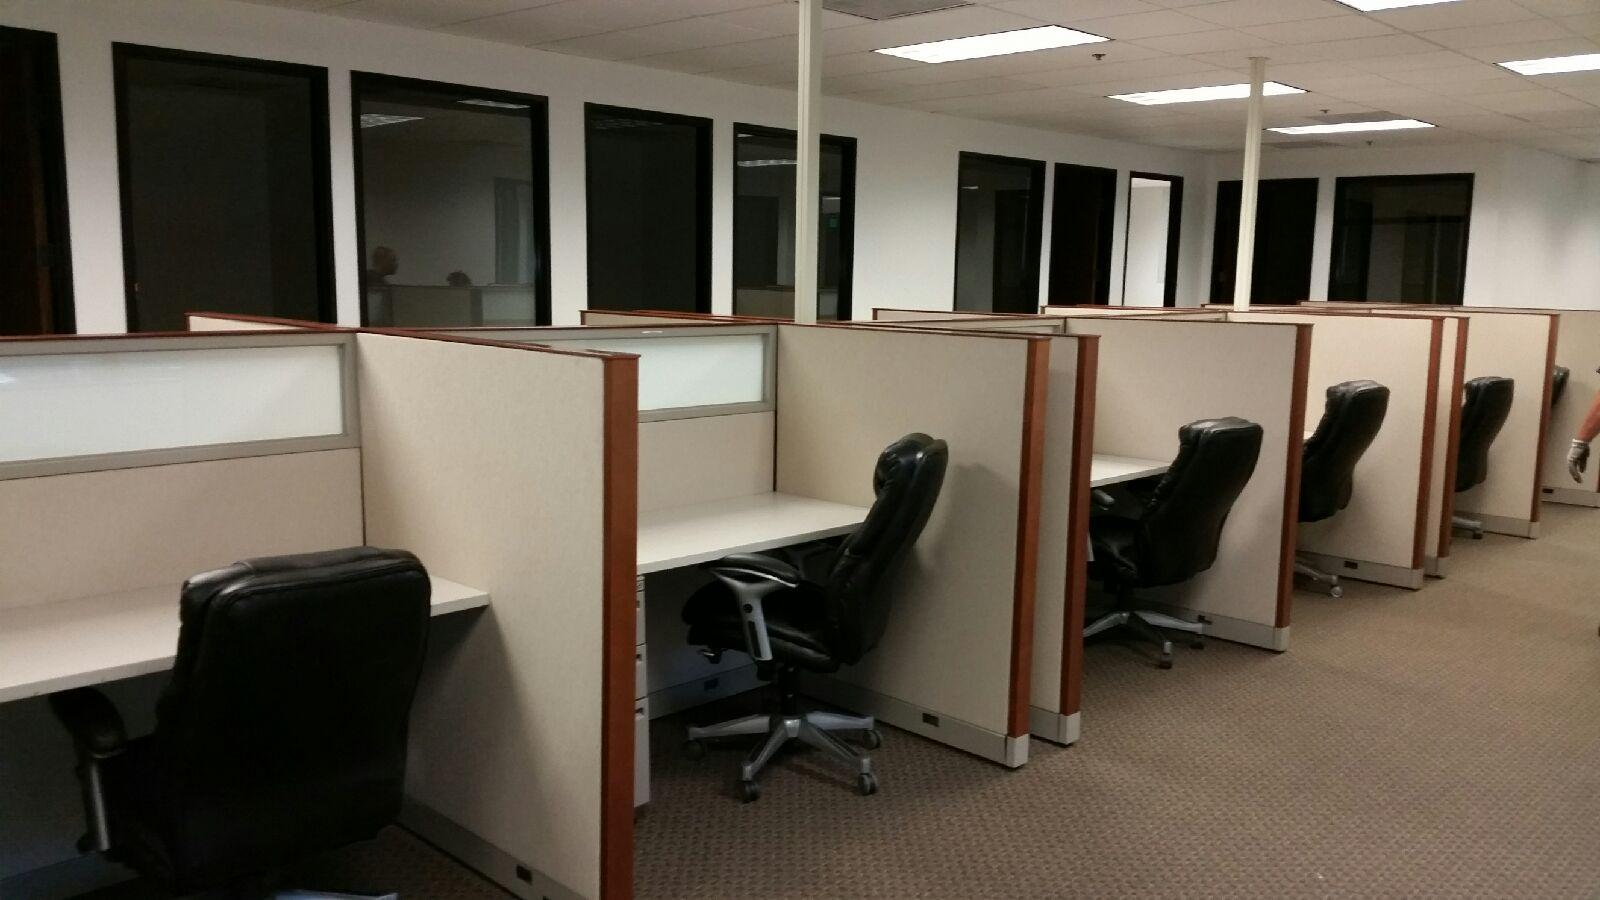 4 Telemarketing Cubicles